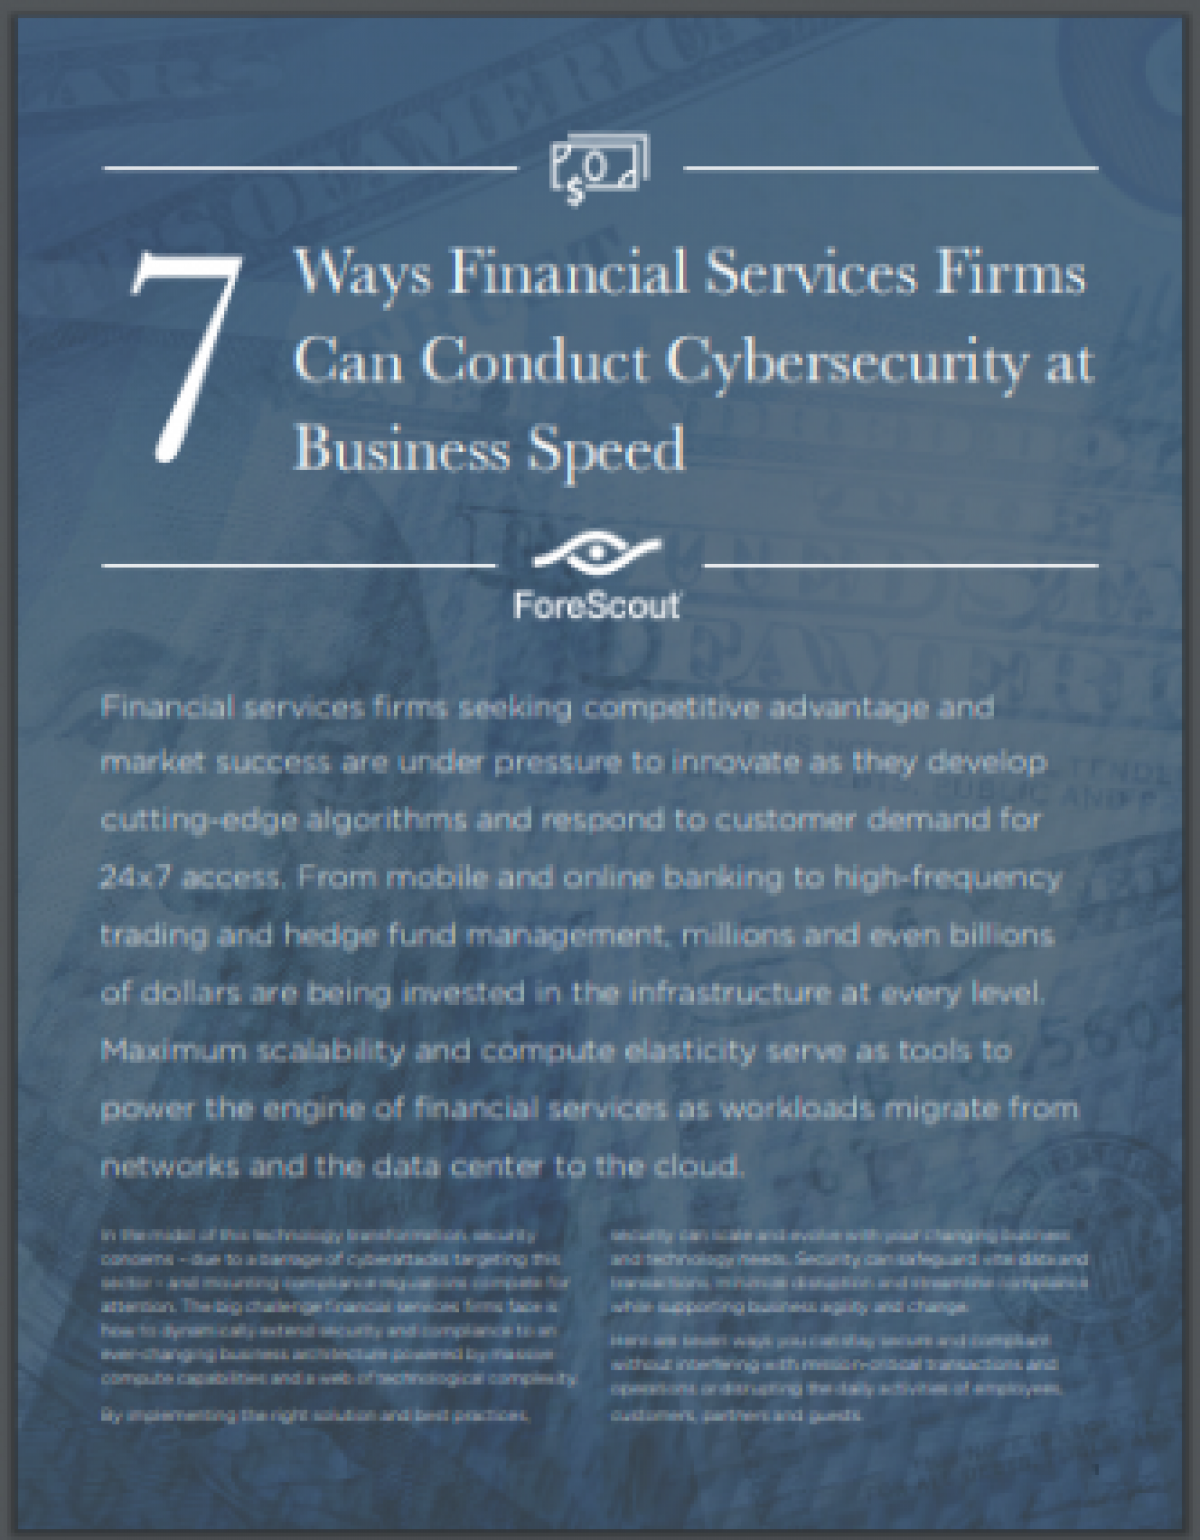 7 Ways Financial Services Firms Can Conduct Cybersecurity at Business Speed